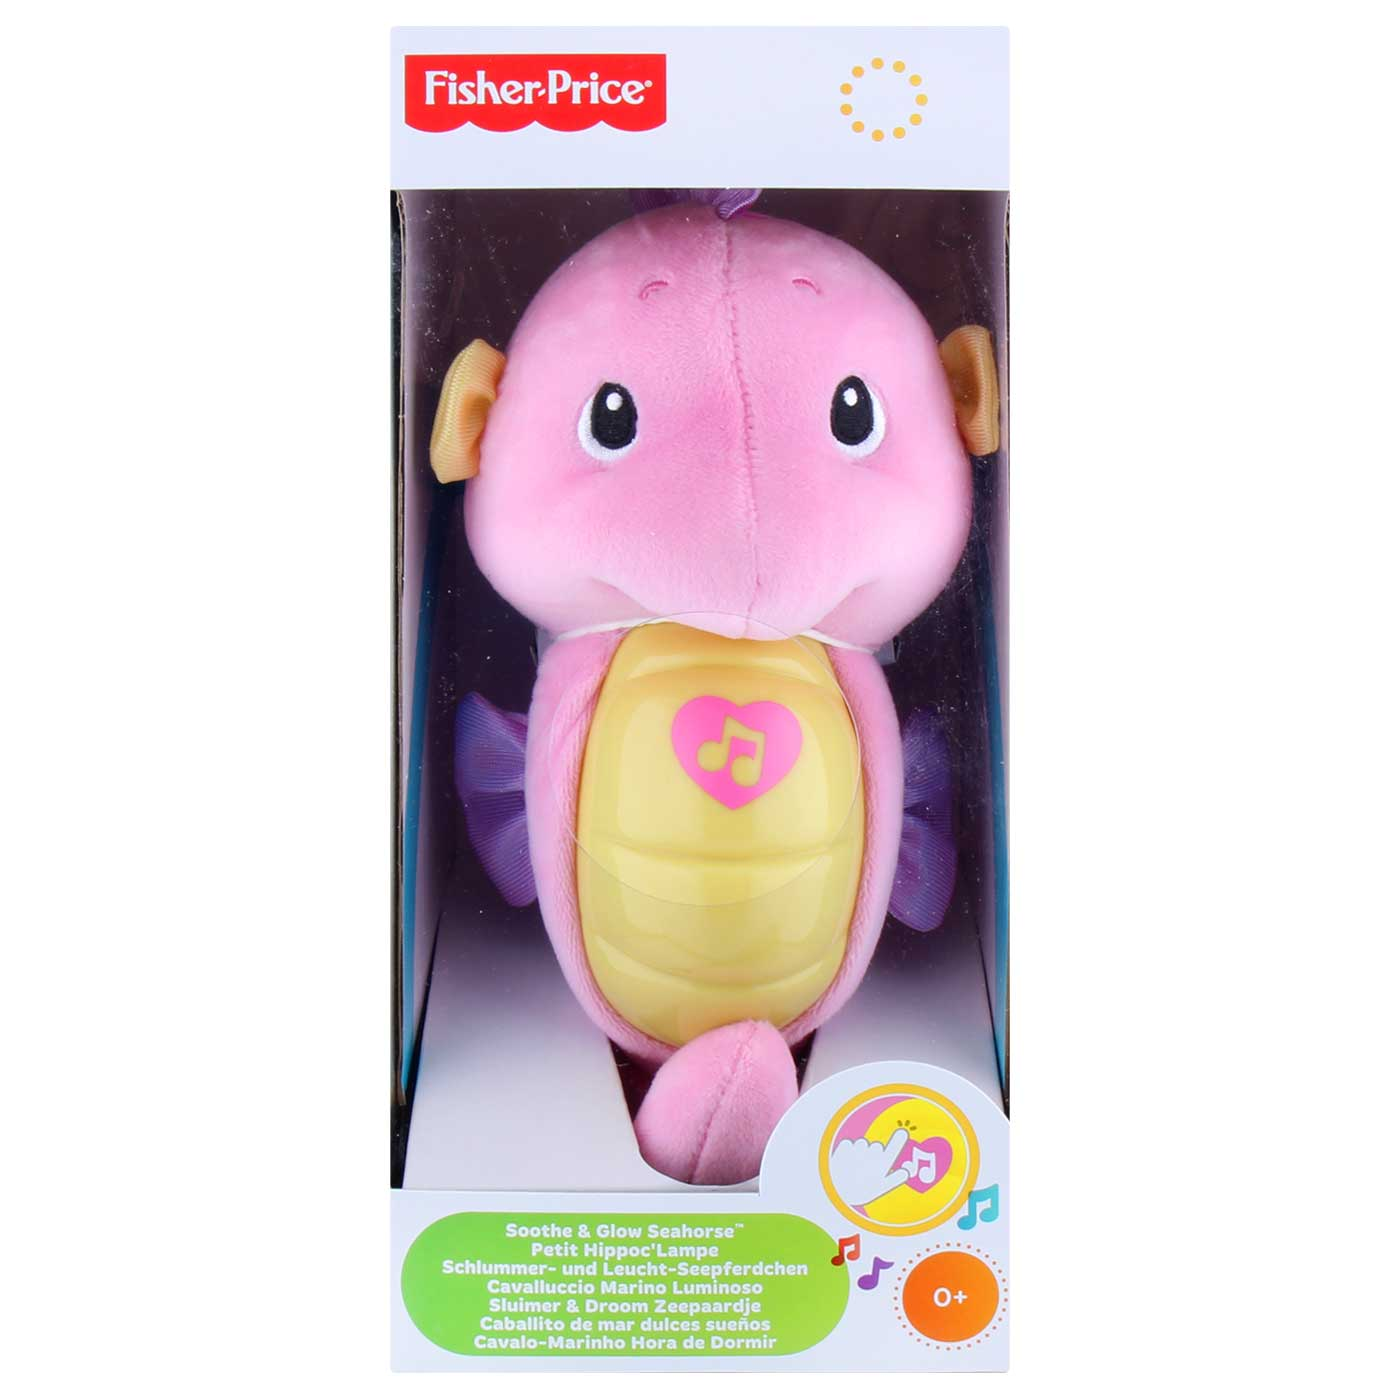 Fisher Price Soothe & Glow Seahorse WB DGH83 1